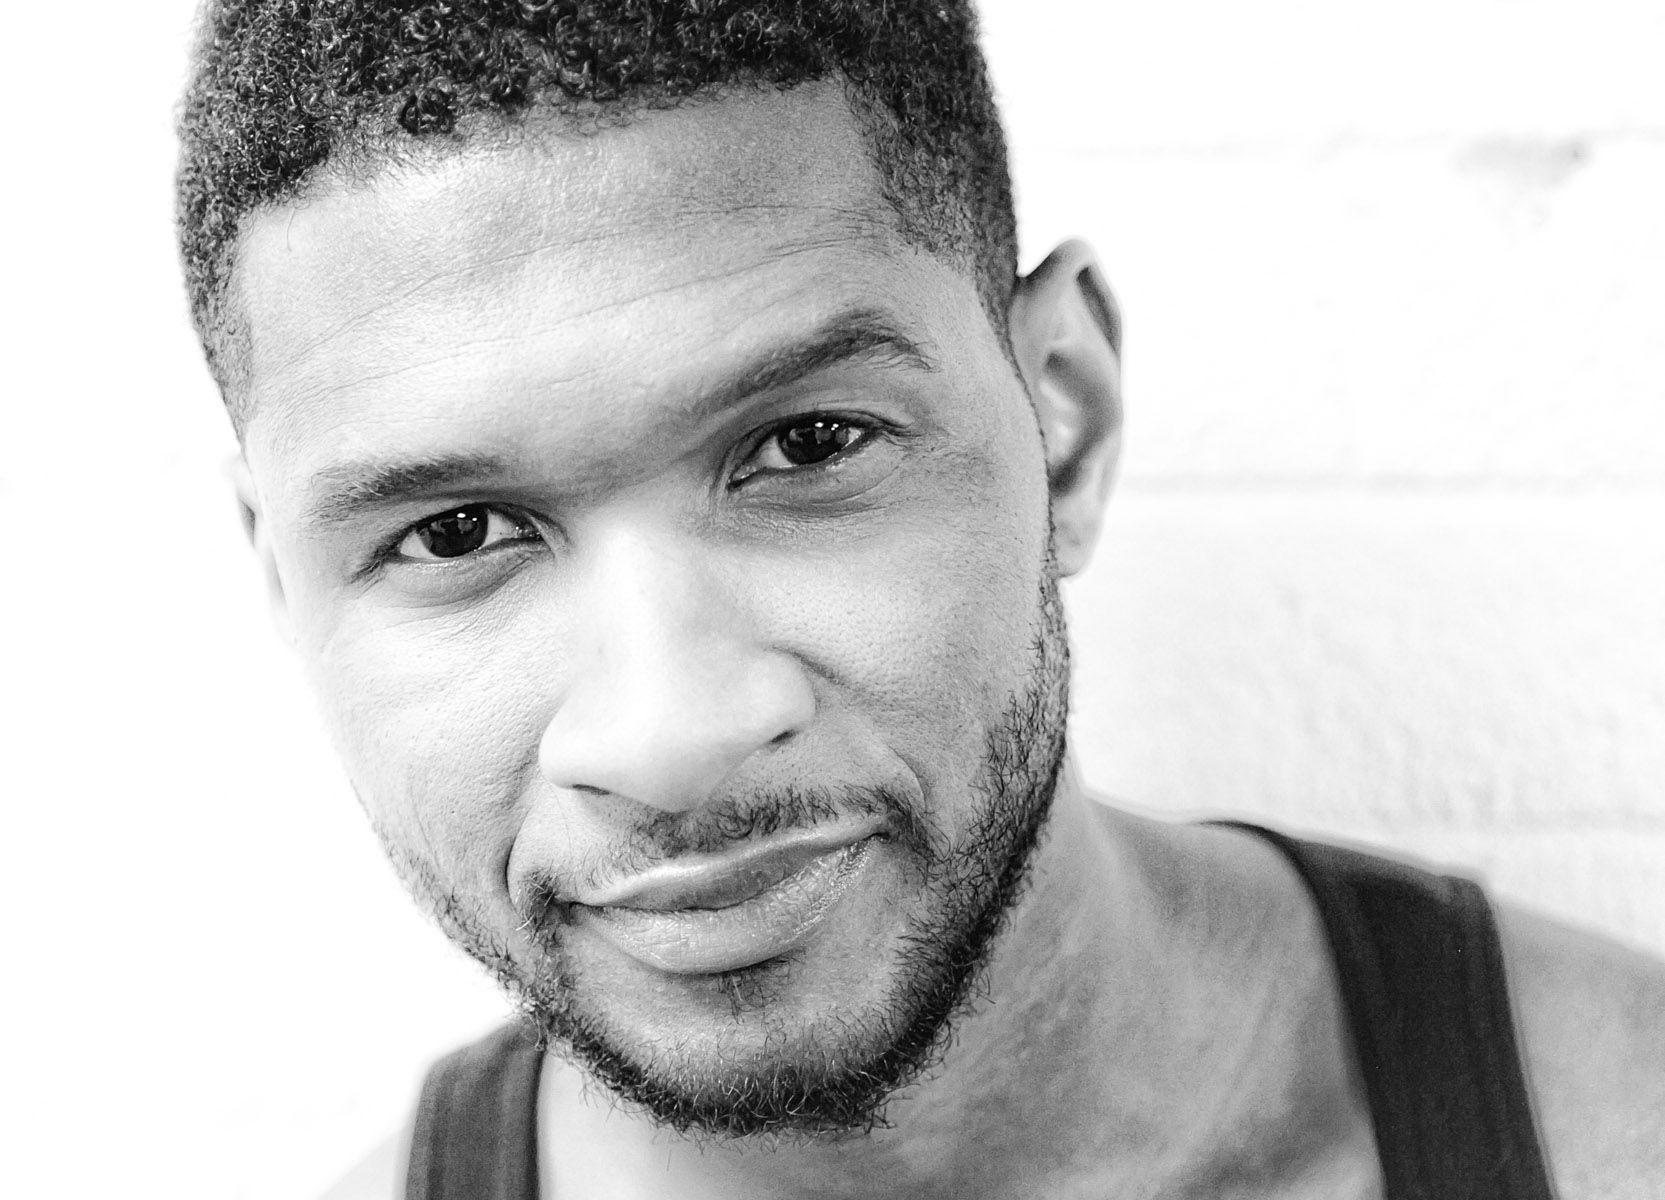 Usher portrait by Christie Goodwin